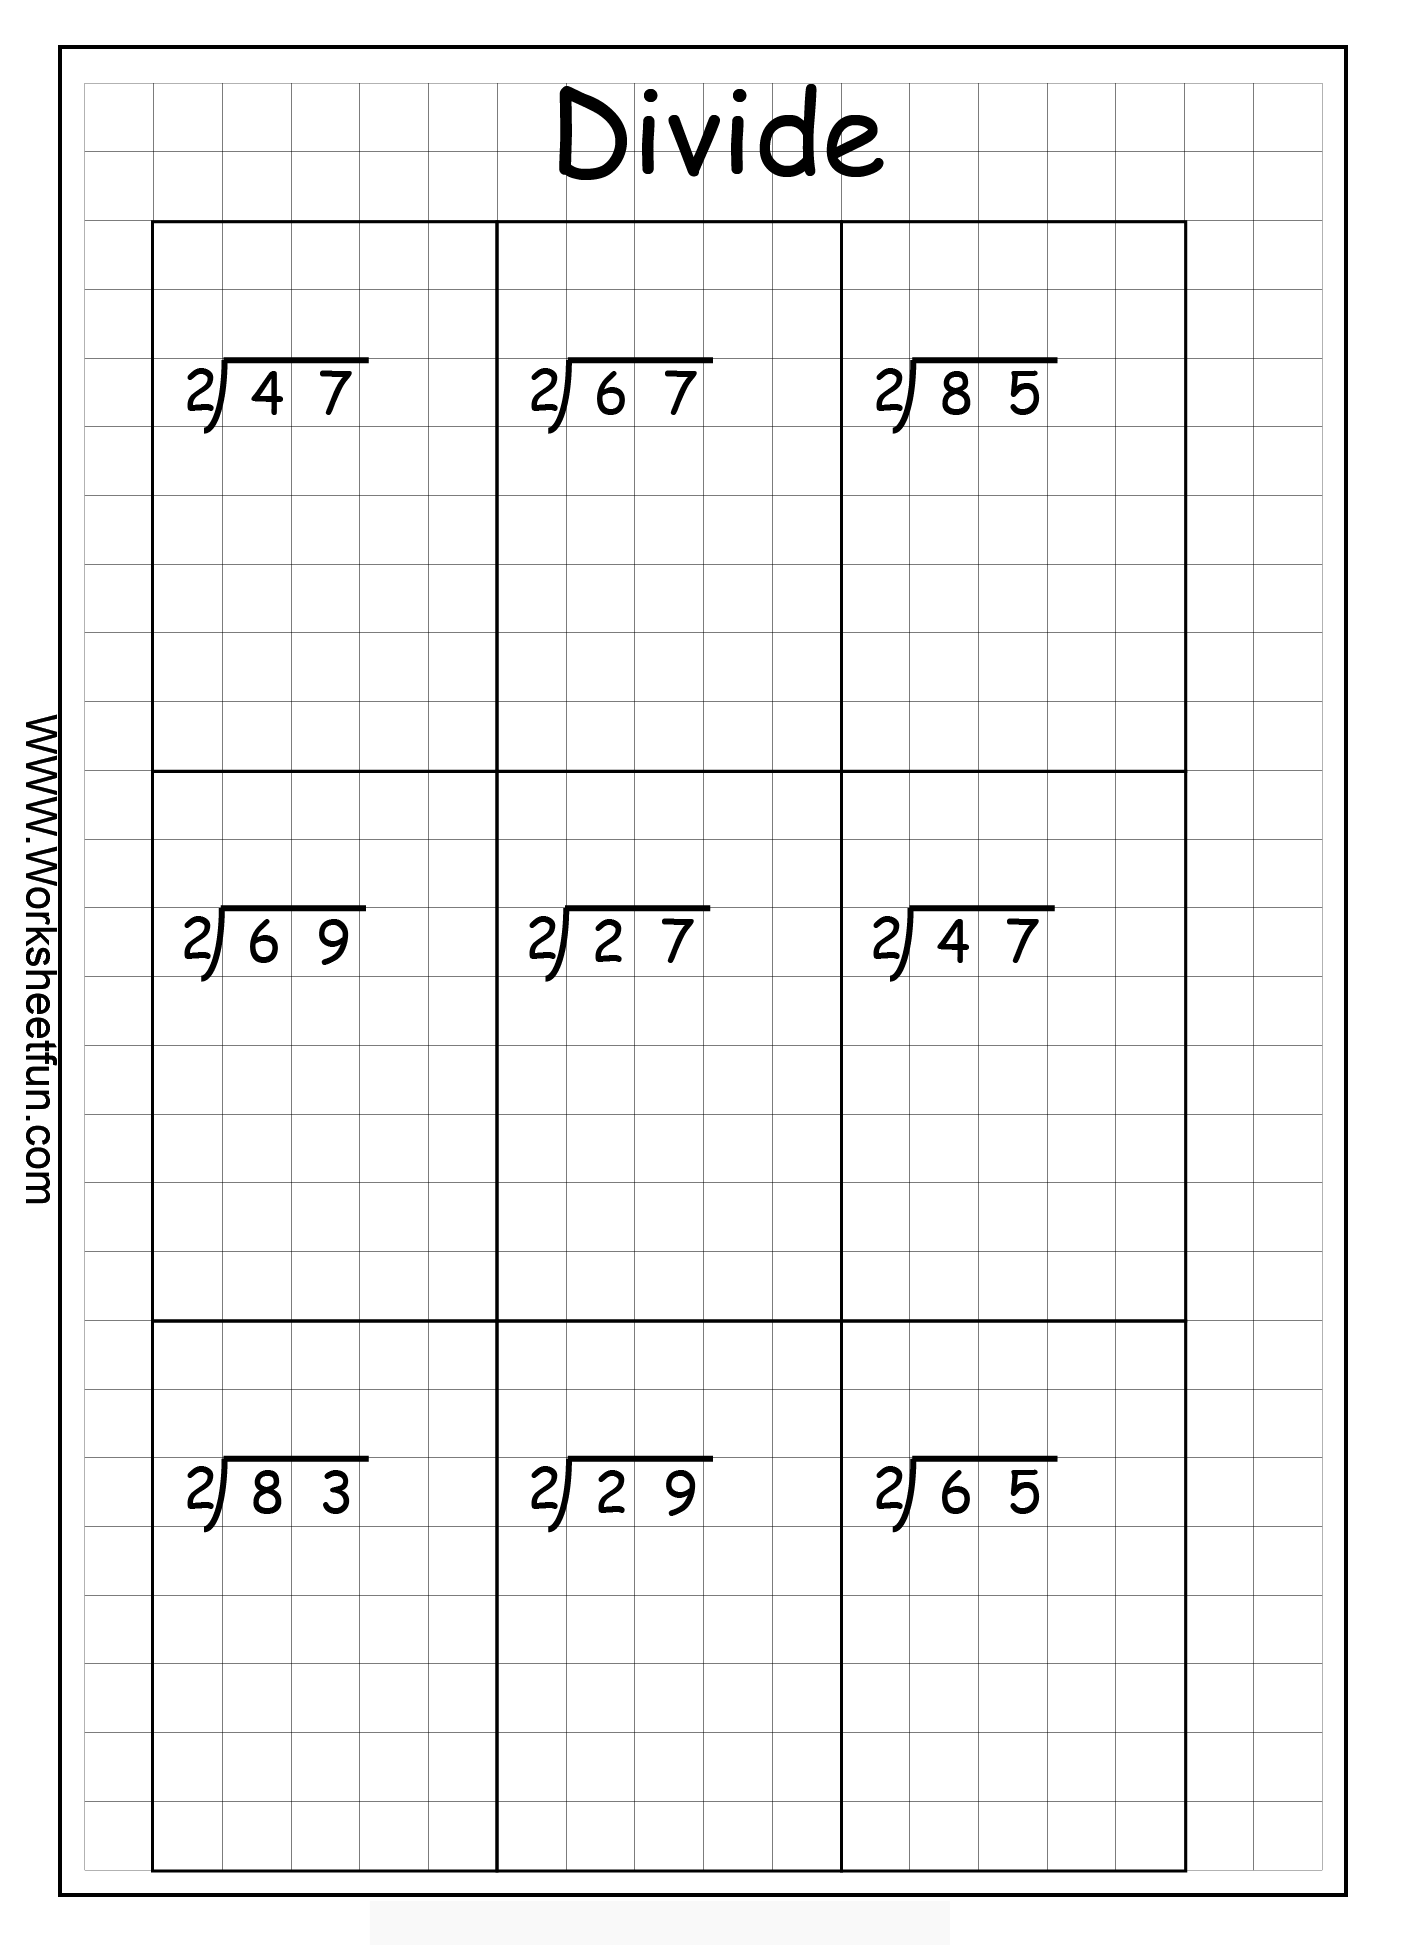 medium resolution of Pin by www.worksheetfun .com on Printable Worksheets   Division worksheets